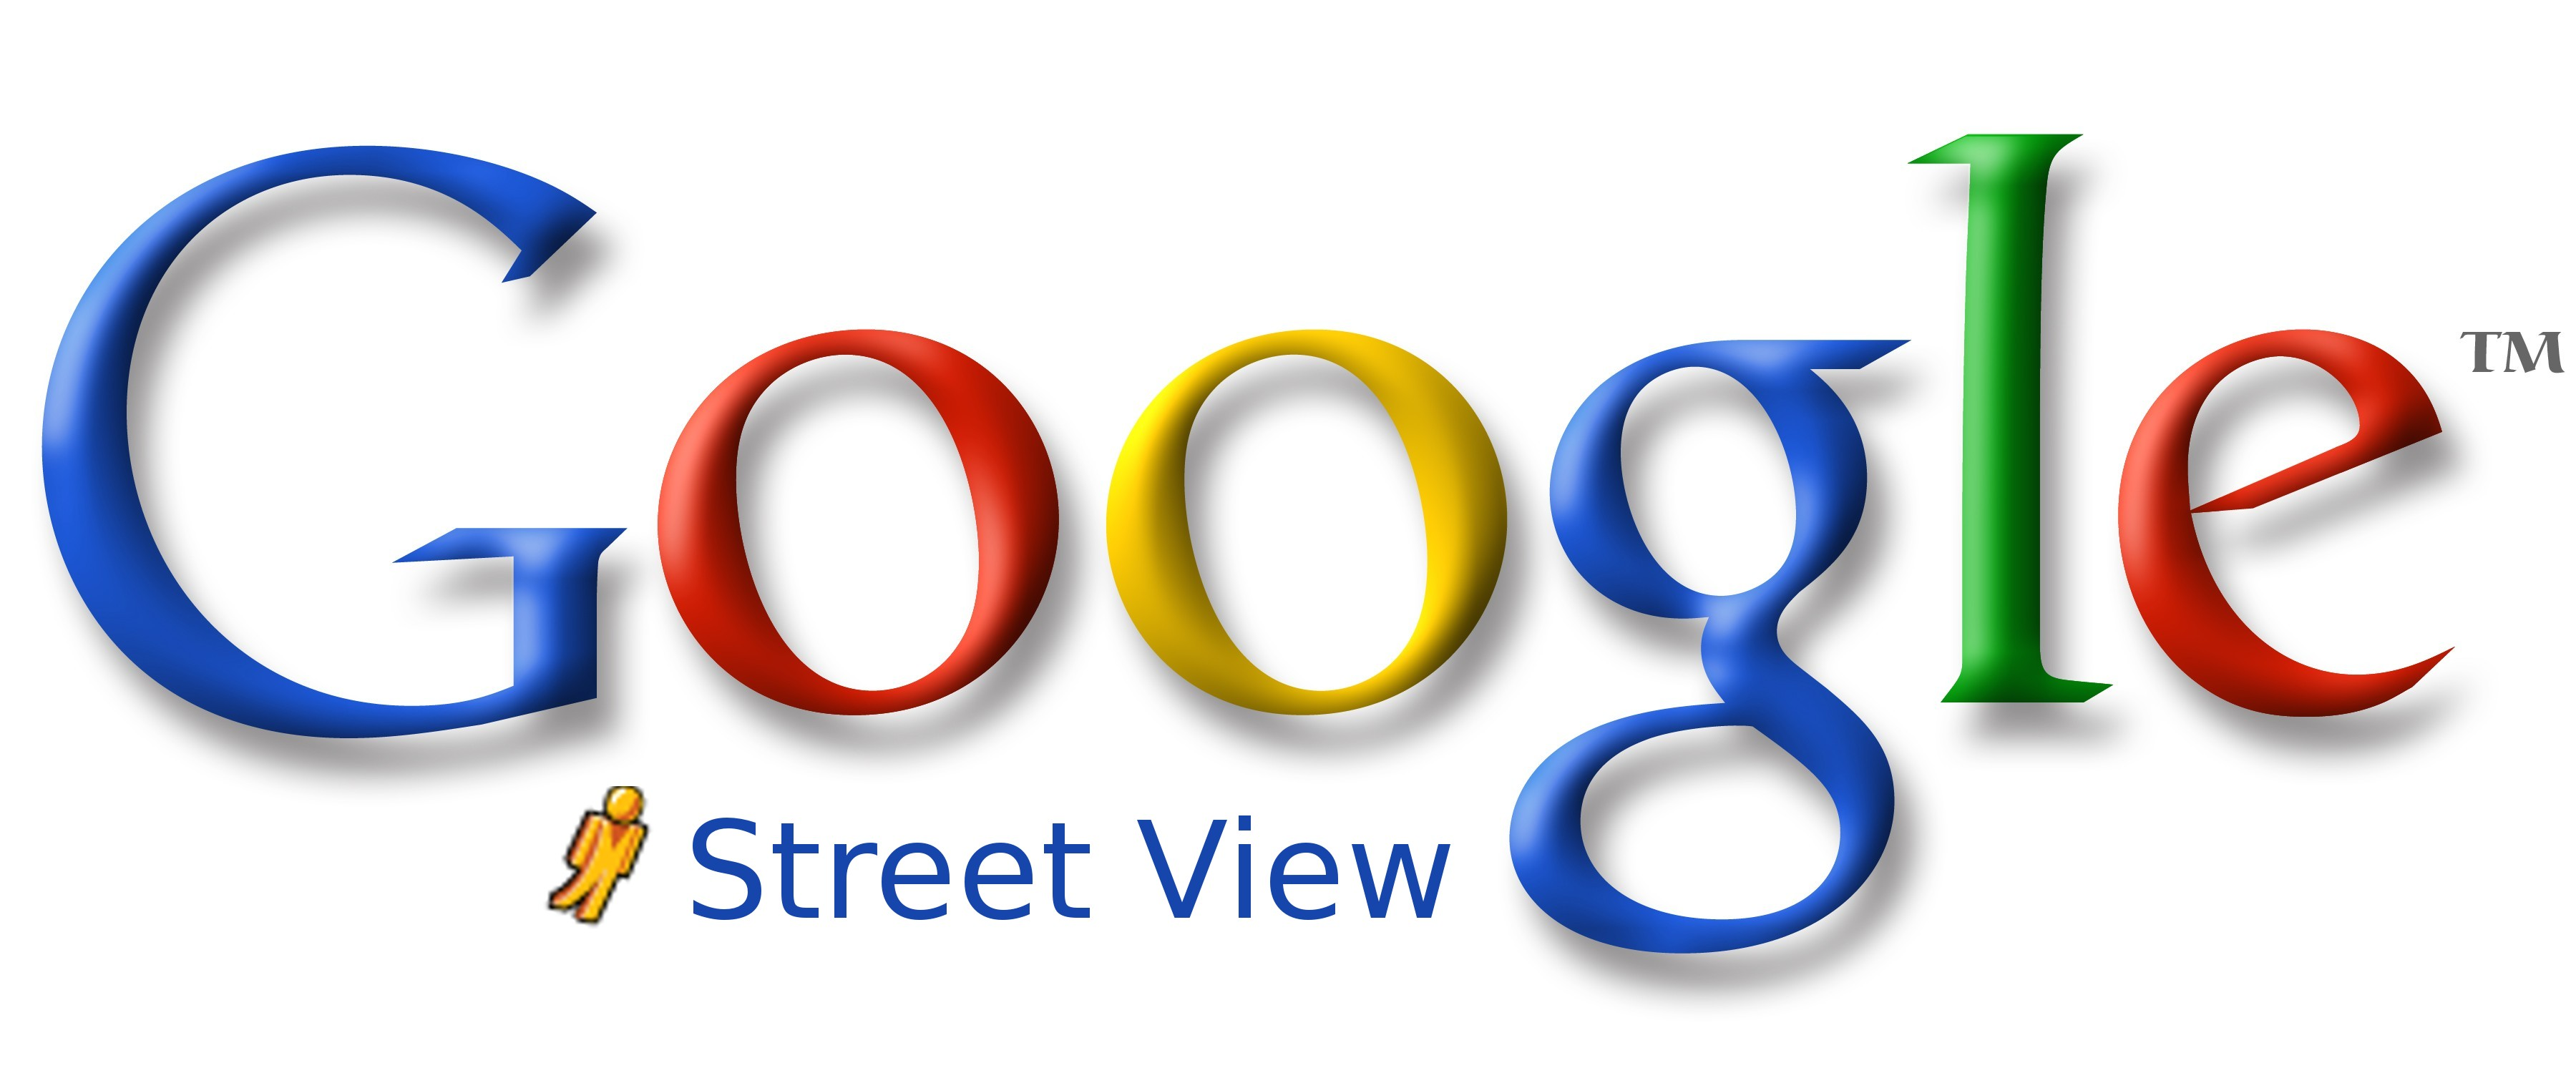 local guides connect difference between google maps and google street v local guides connect